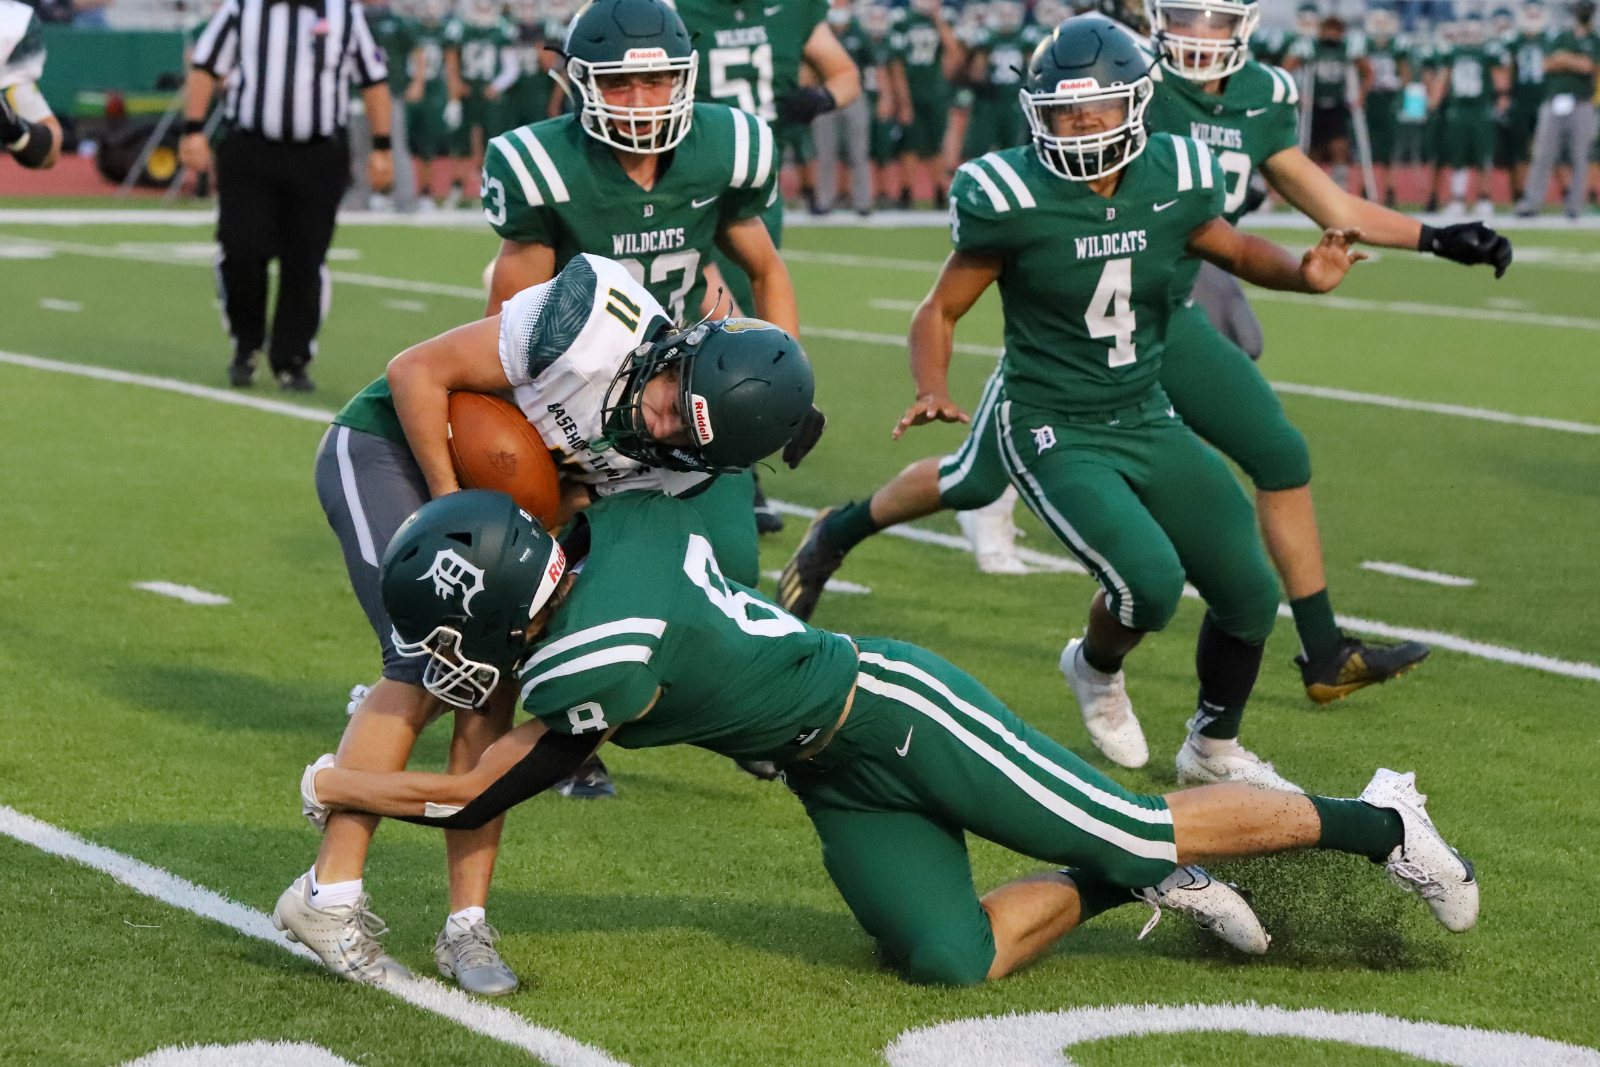 Varsity Football vs. Basehor-Linwood